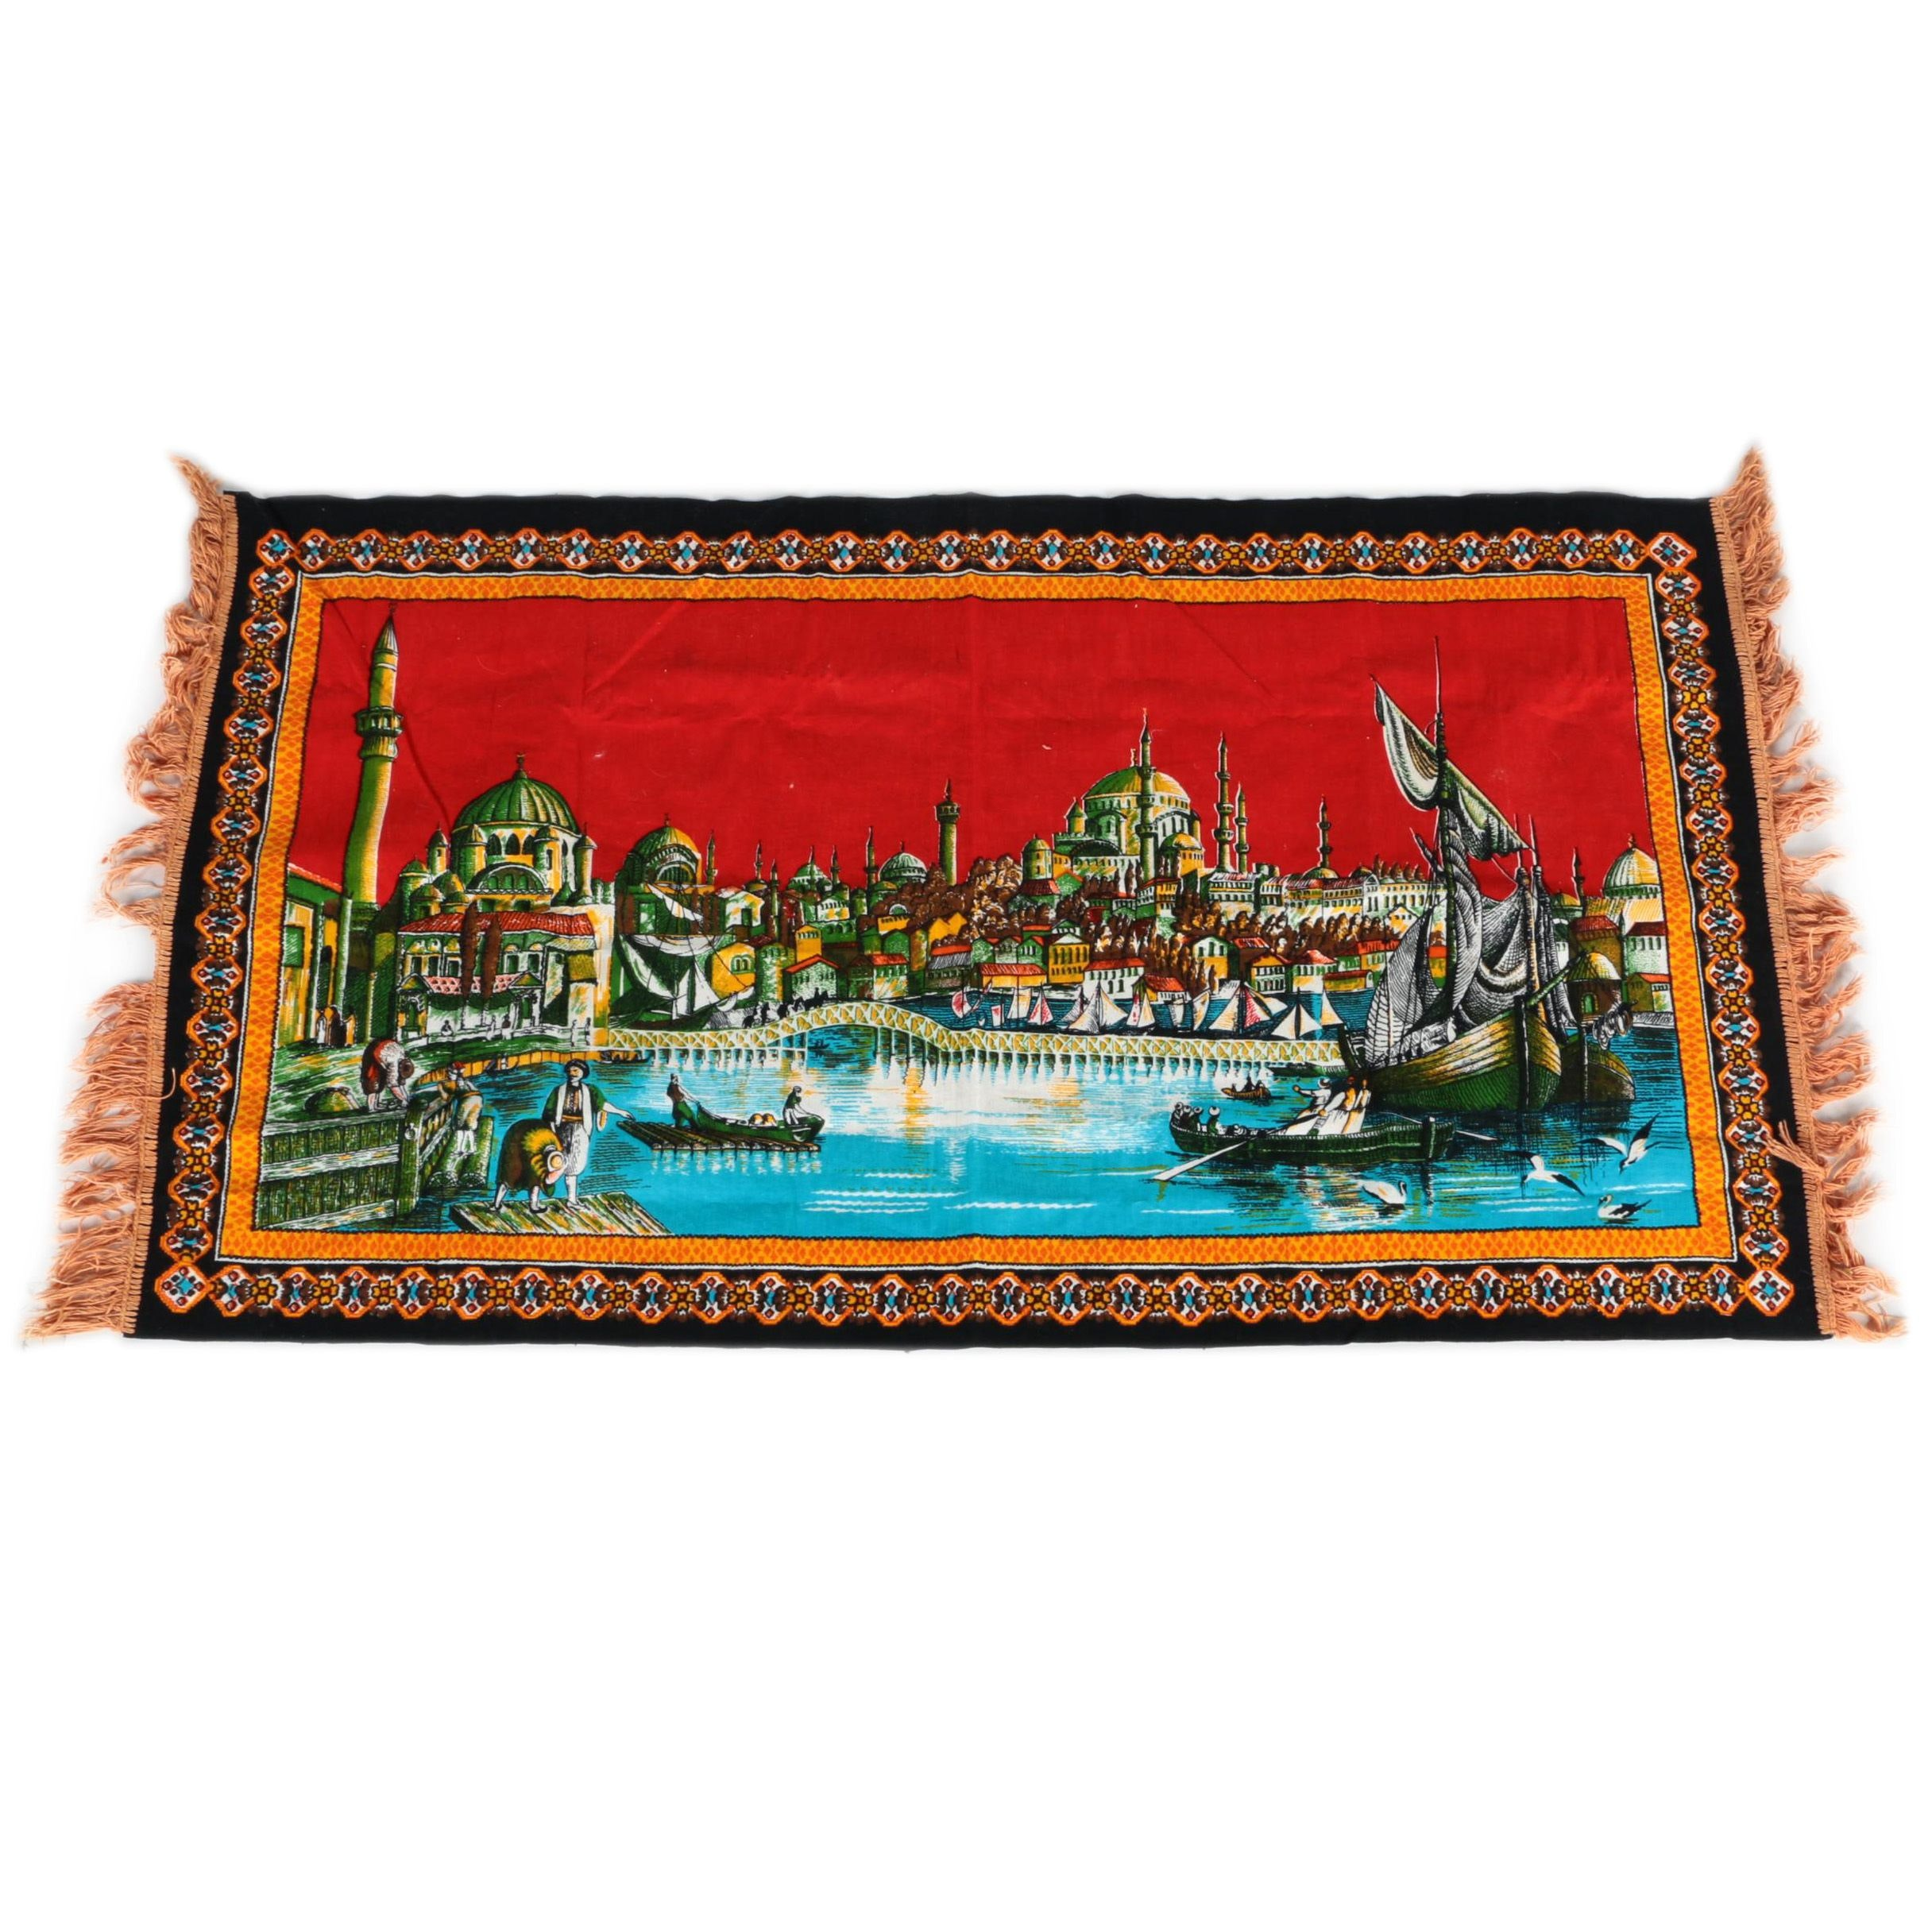 Printed Fabric Landscape Tapestry